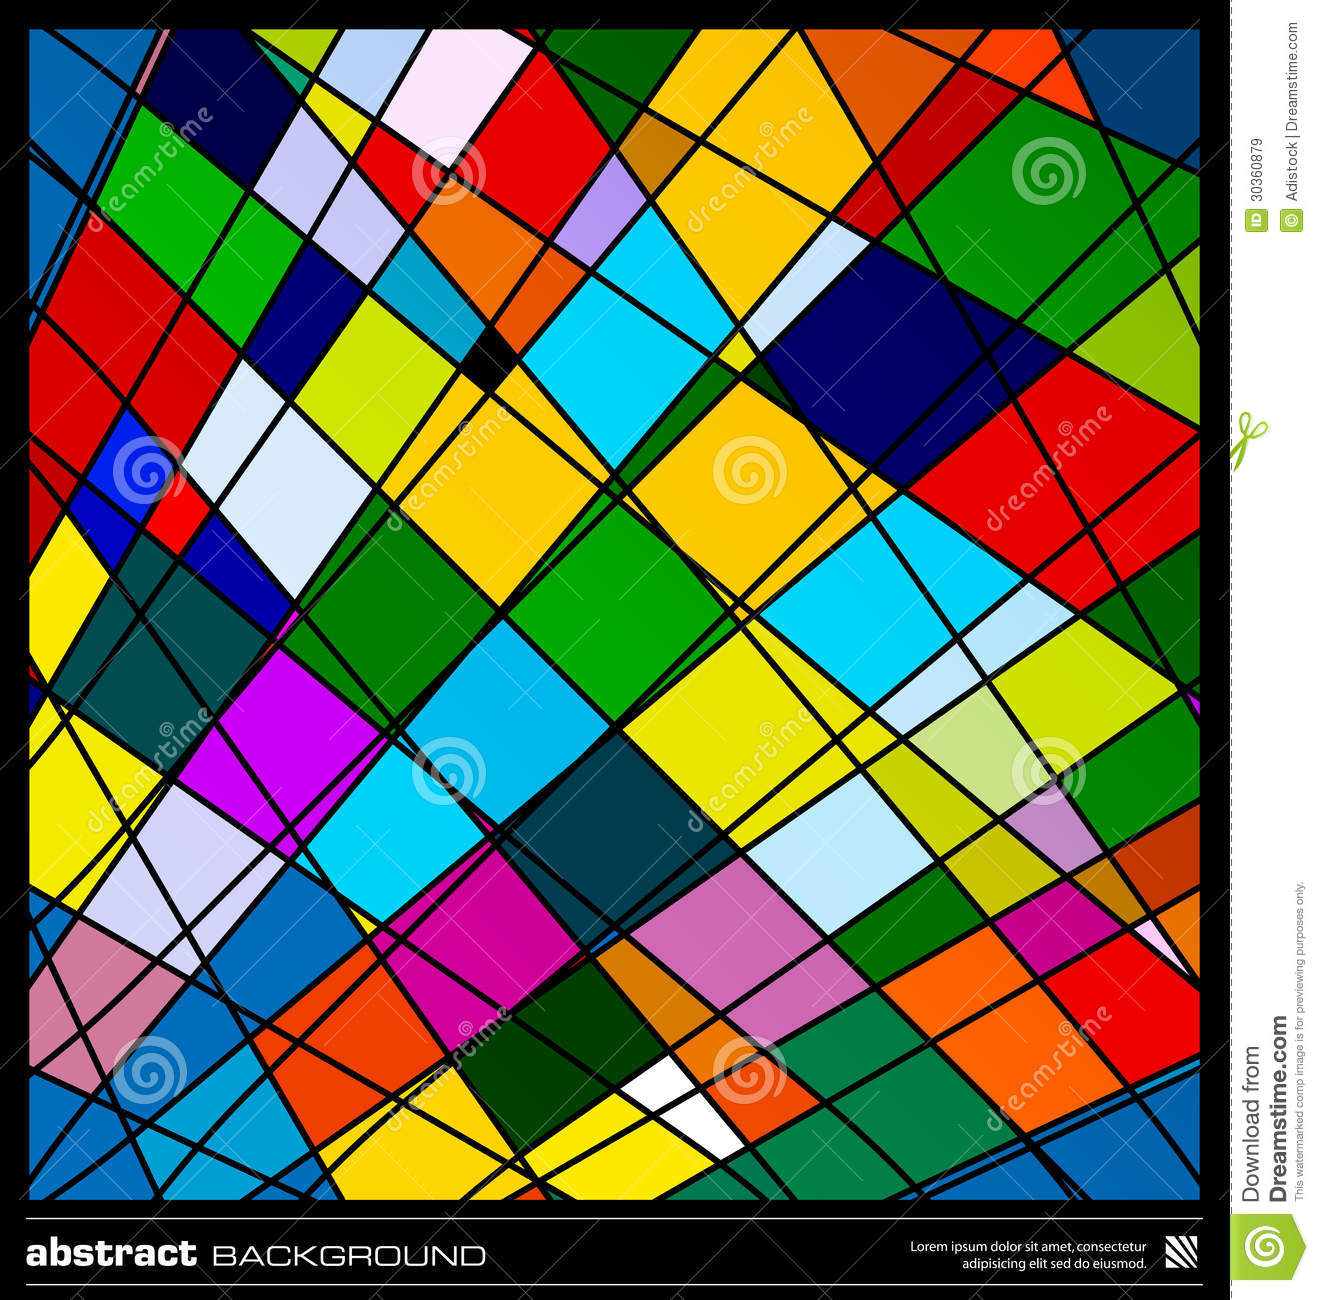 Abstract Colorful Geometric Background Royalty Free Stock